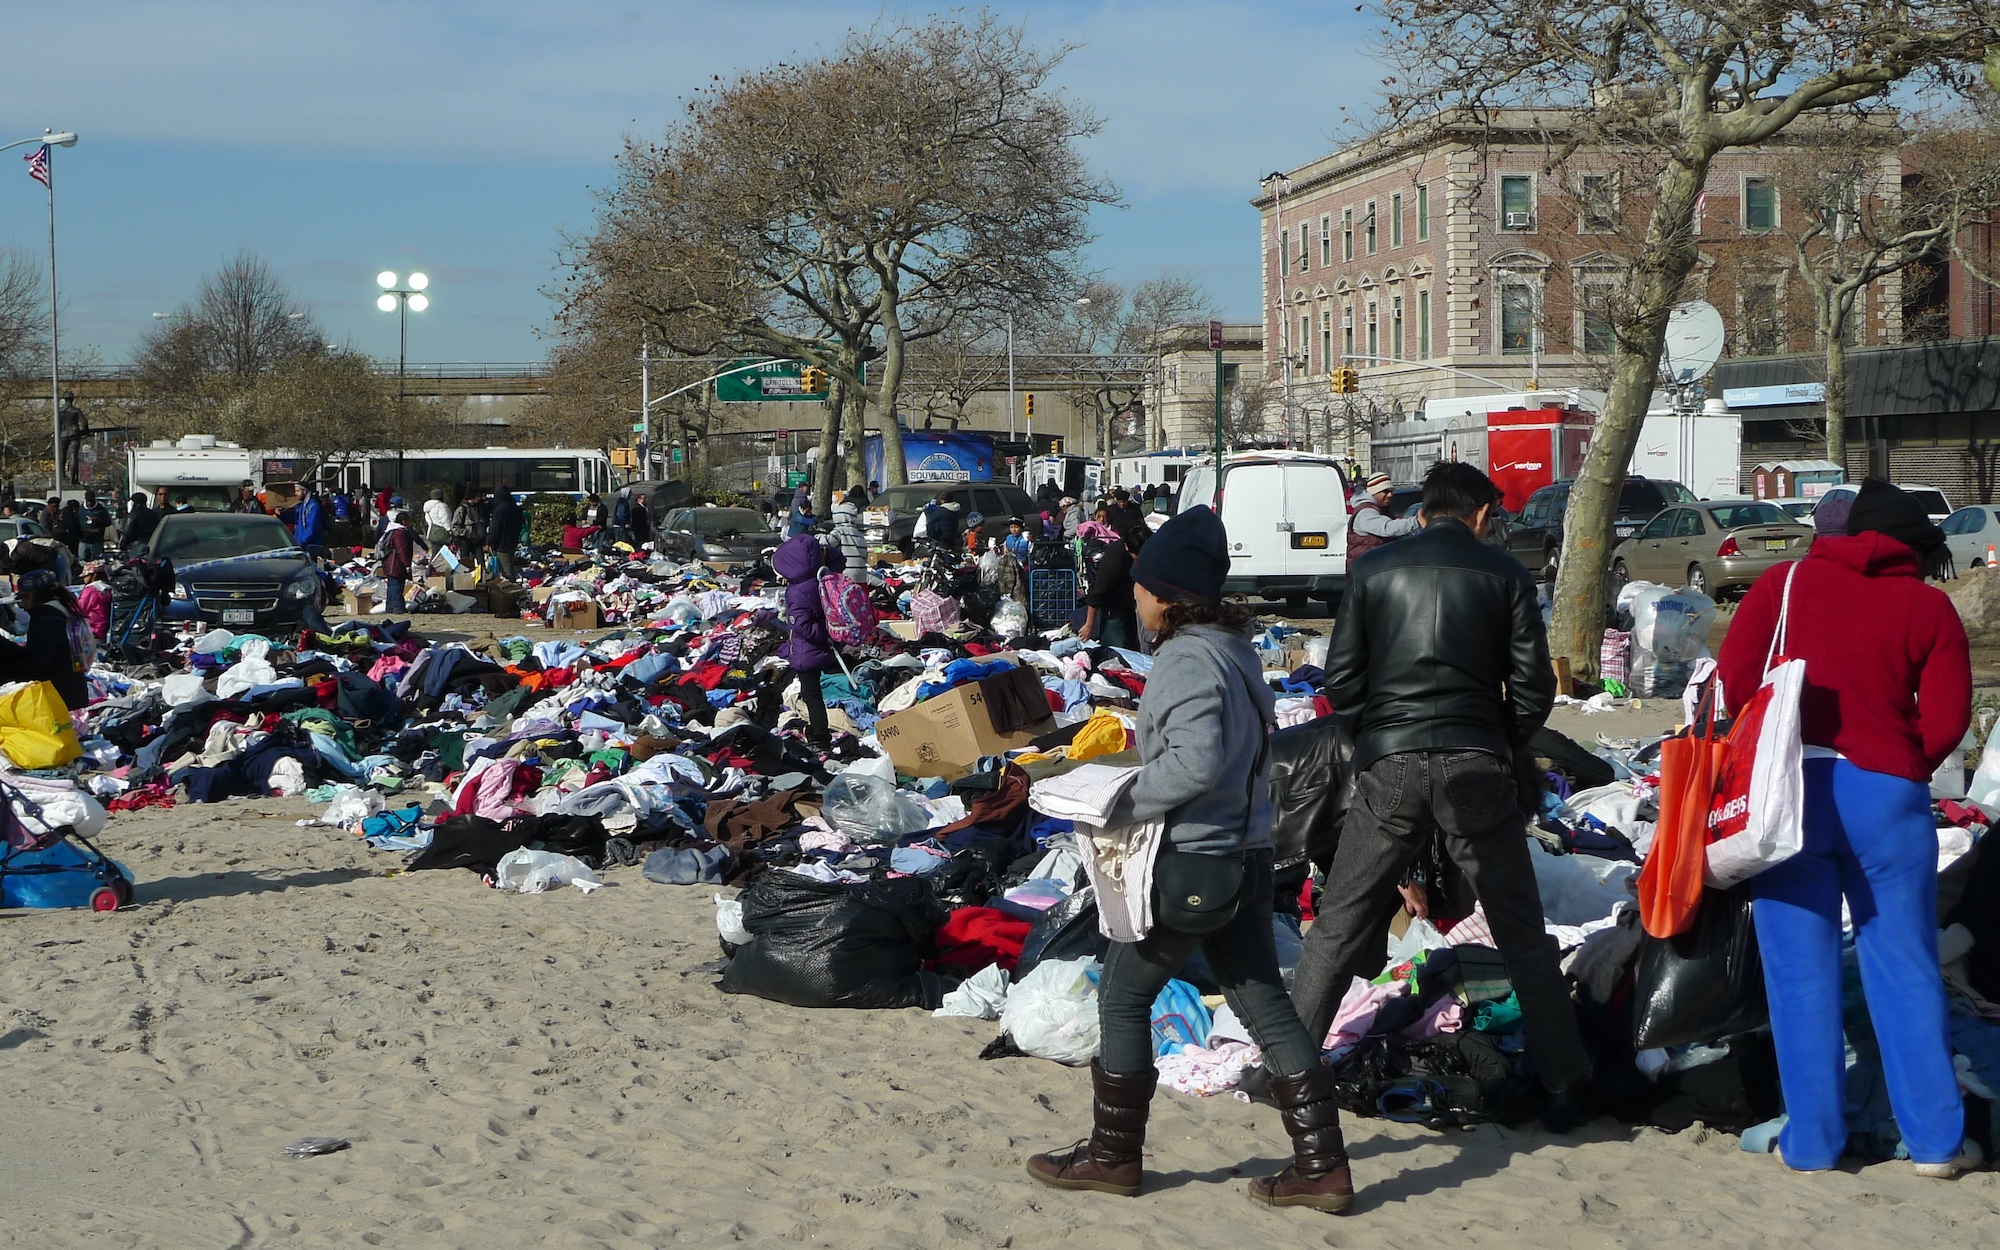 Gathering clothes on the sand covered parking lot